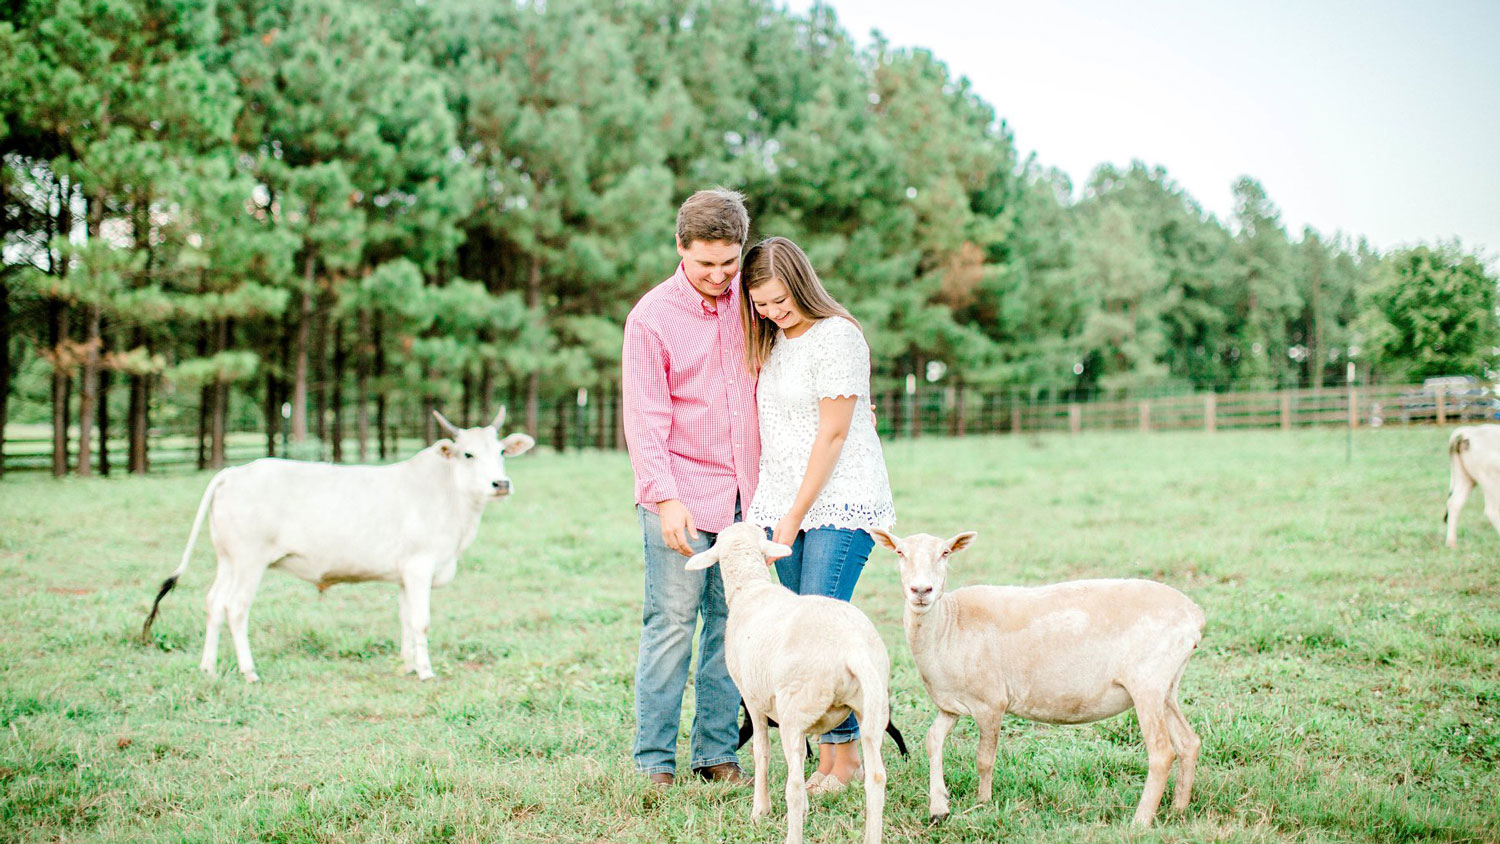 A young couple on a farm with a miniature cow and sheep.